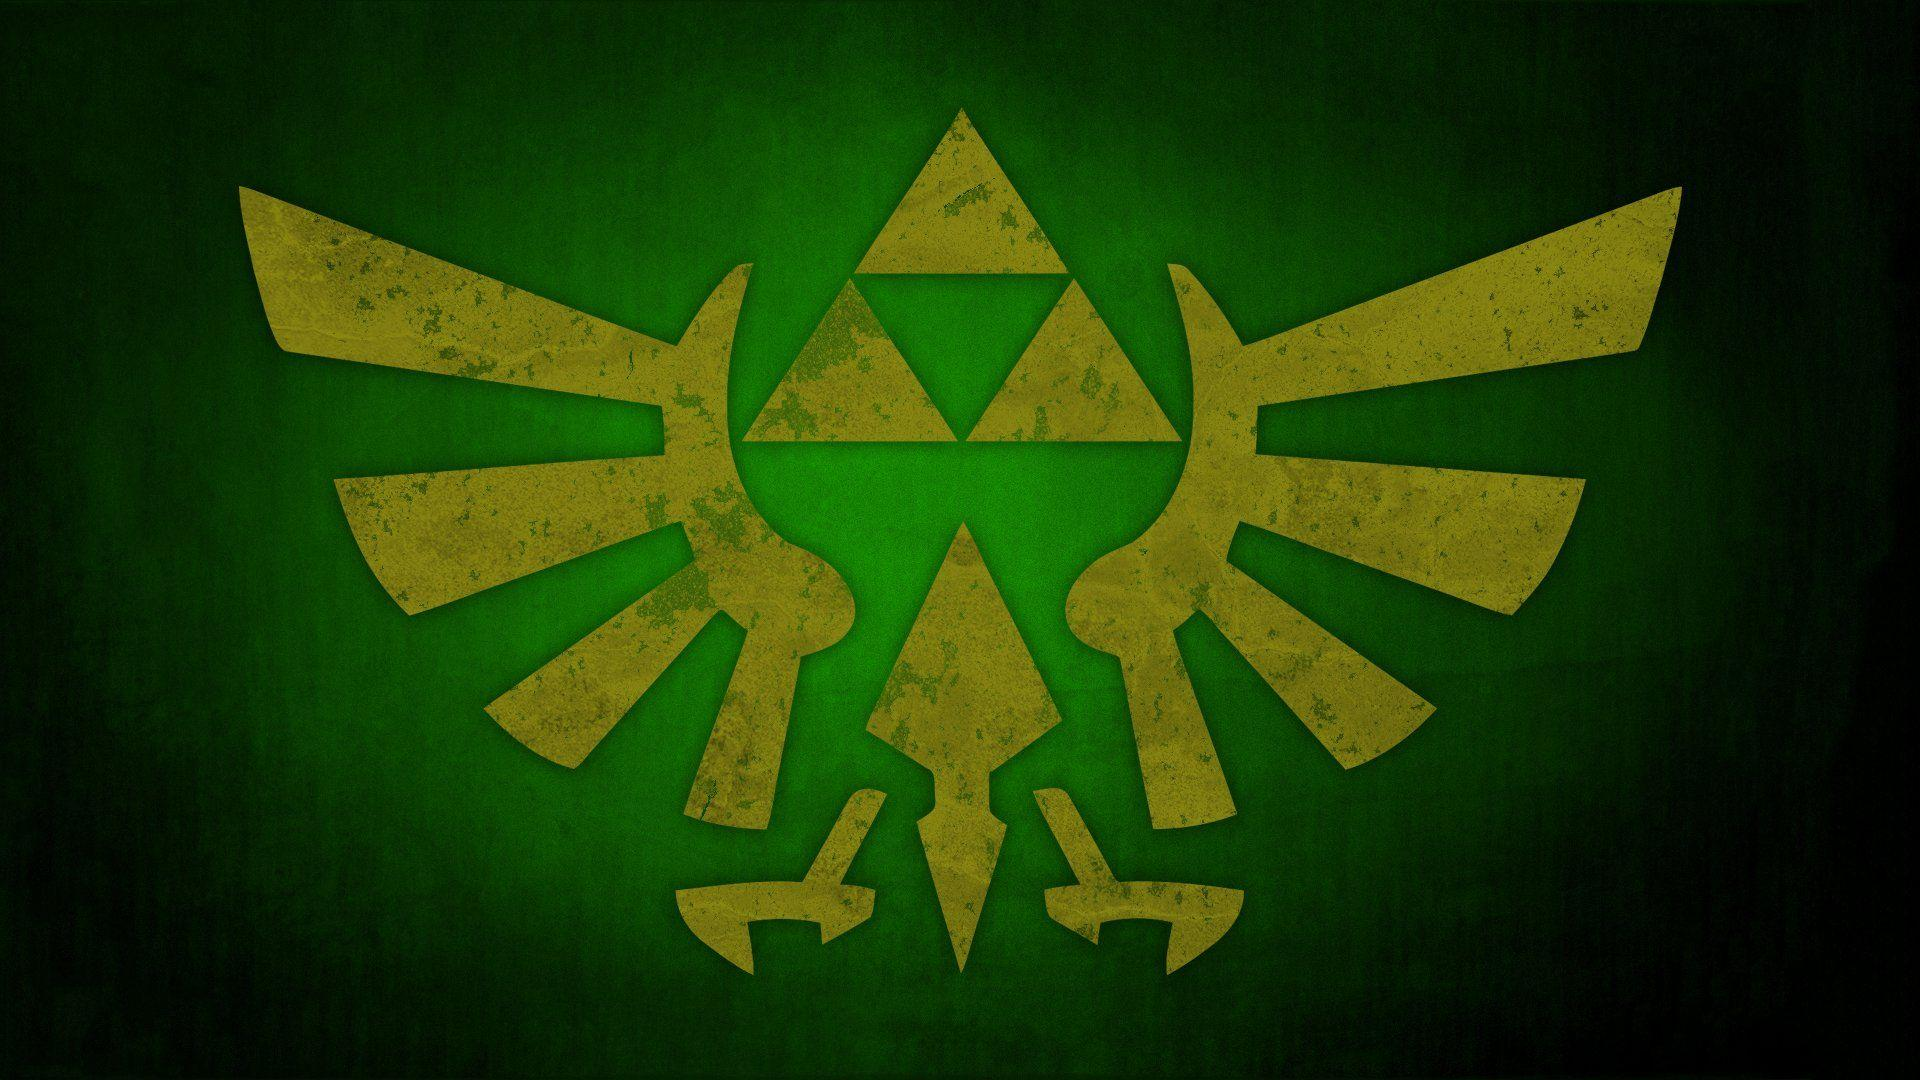 Legend Of Zelda Backgrounds Triforce Wallpaper Cave